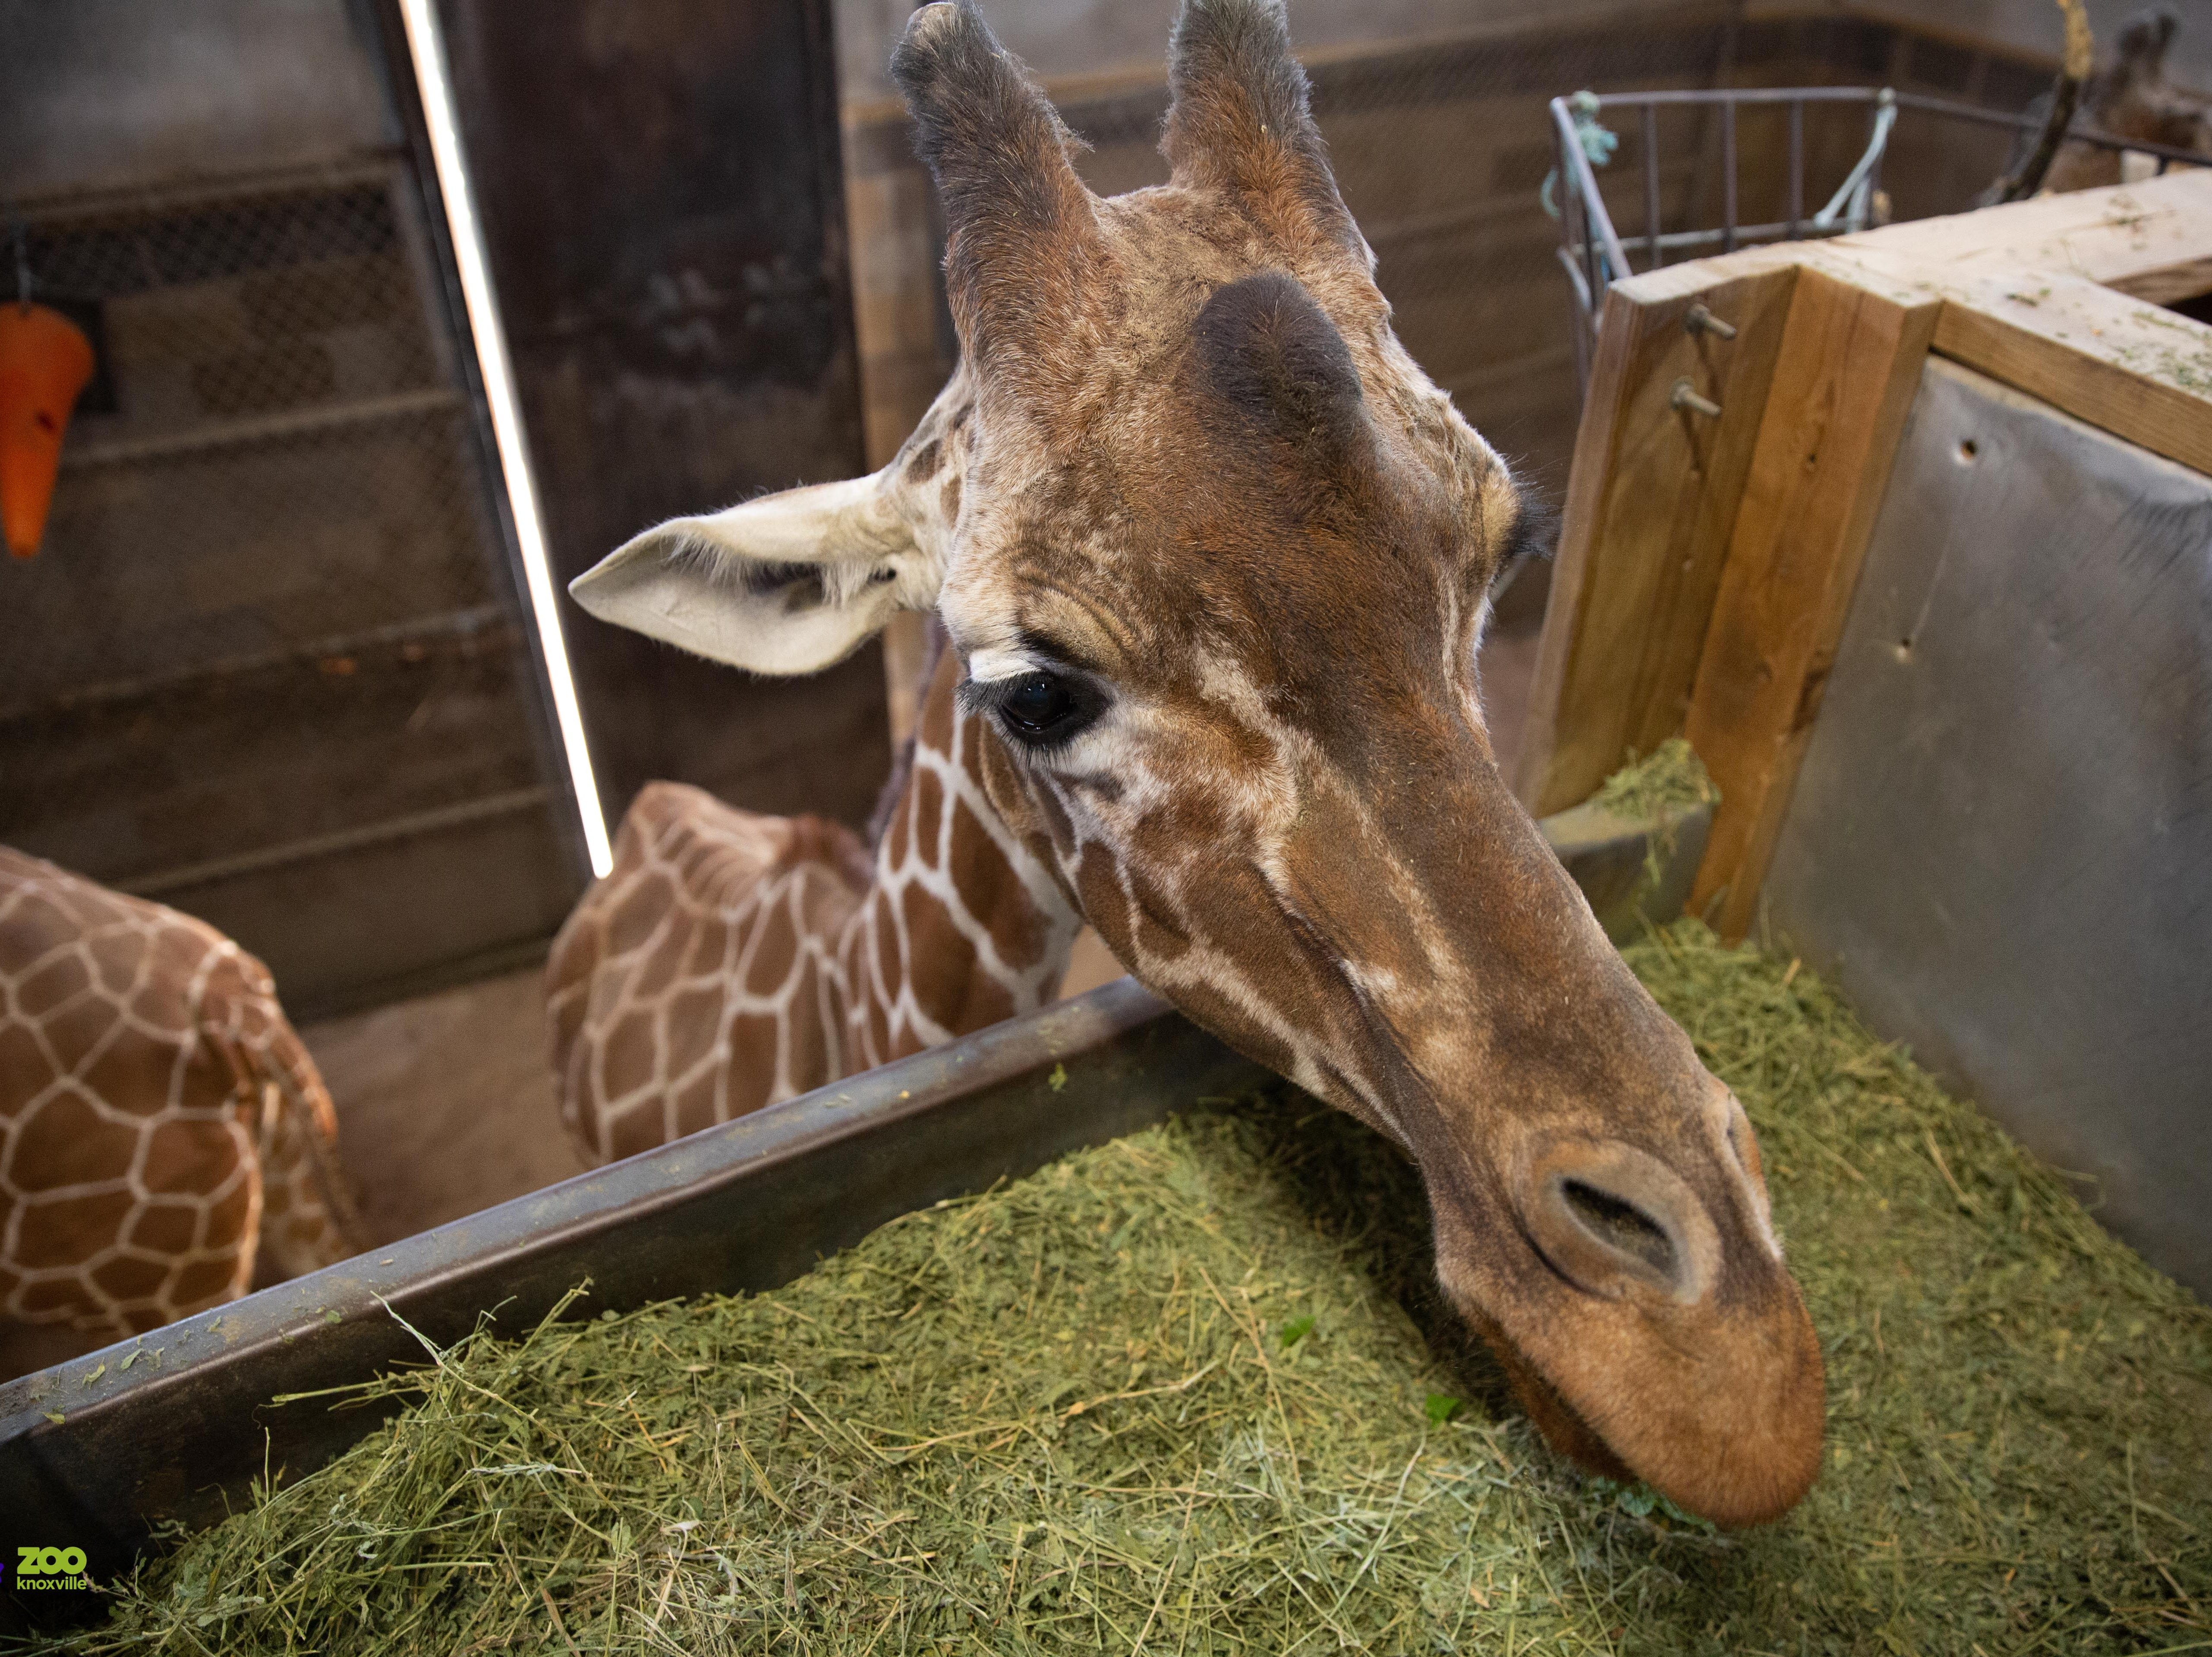 Zoo Knoxville's 31-year-old giraffe Patches is in declining health. She's the oldest giraffe in the United States.